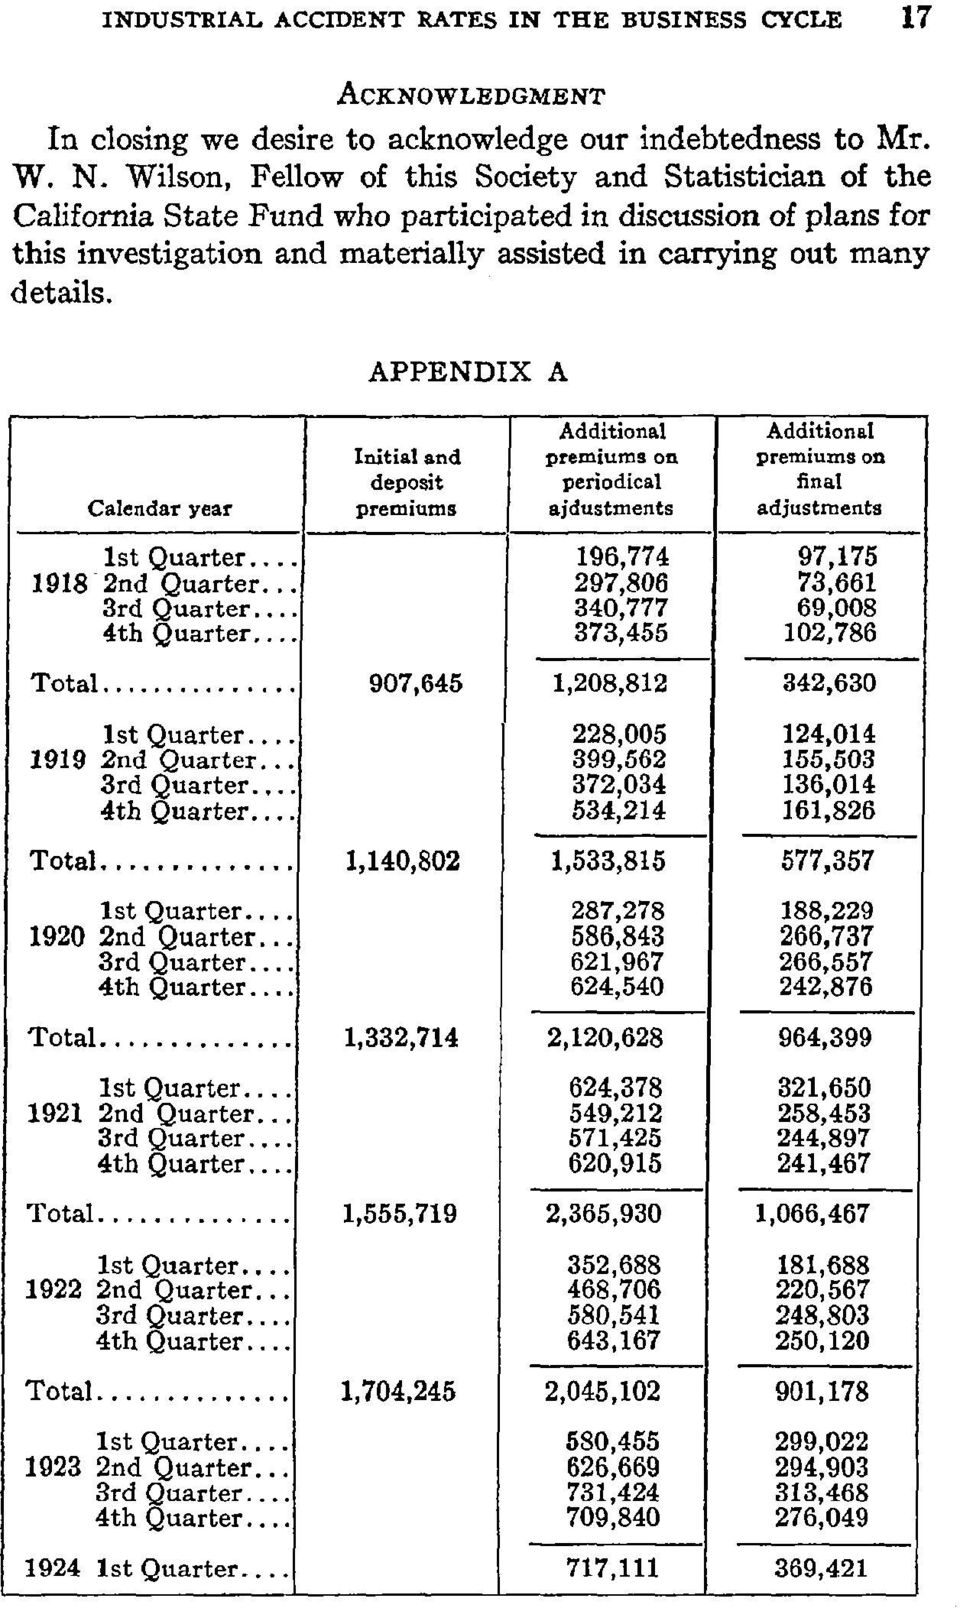 APPENDIX A Calendar year Initial and deposit premiums Additional premiums on periodical ajdustments Additional premiums on final adjustments lstquarter... 1918 2nd Quarter... 3rd Quarter... 4thQuarter.